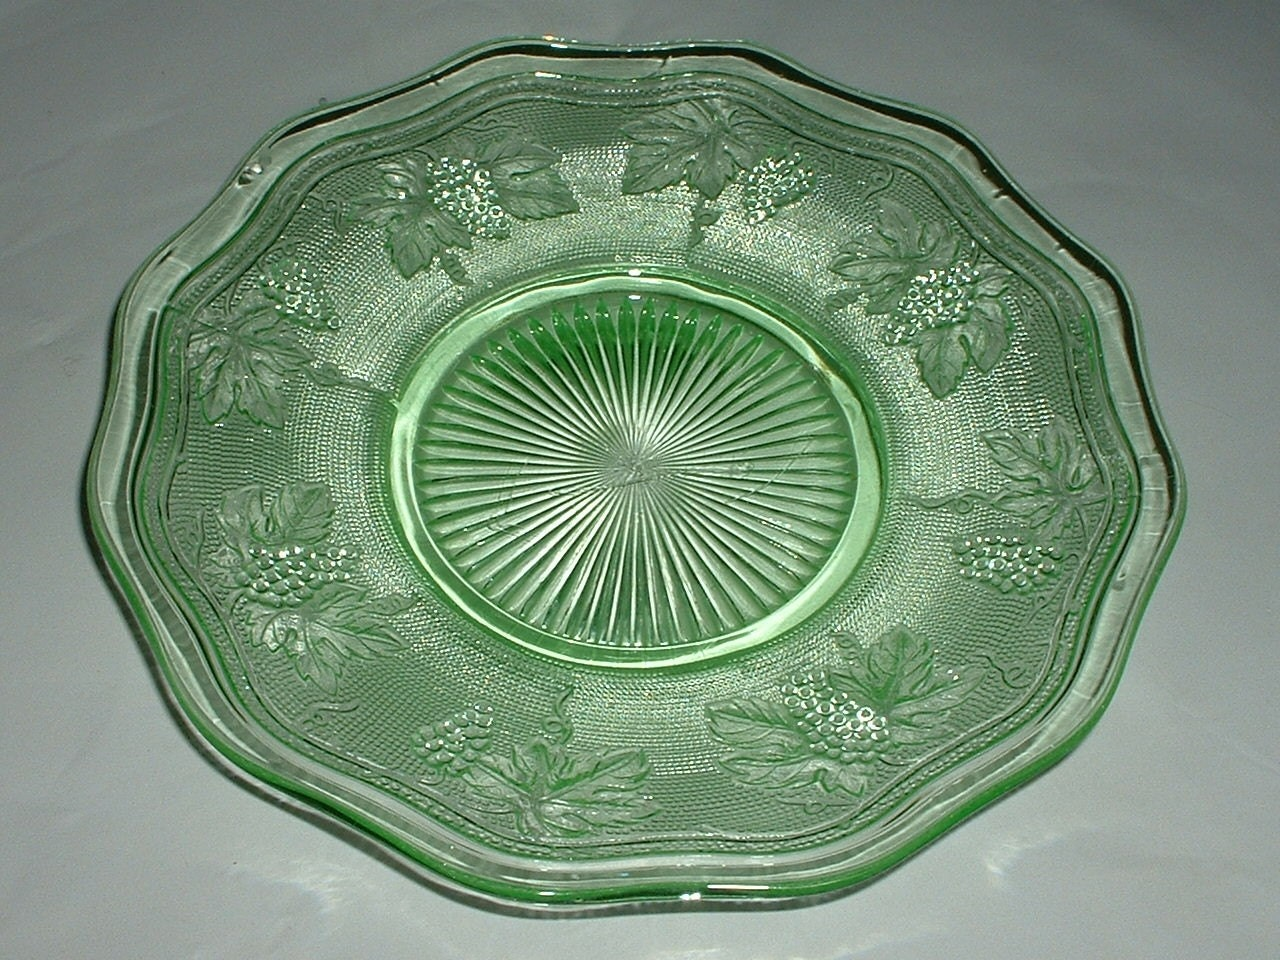 Vintage Green Depression Glass Plate With Grapes Pattern